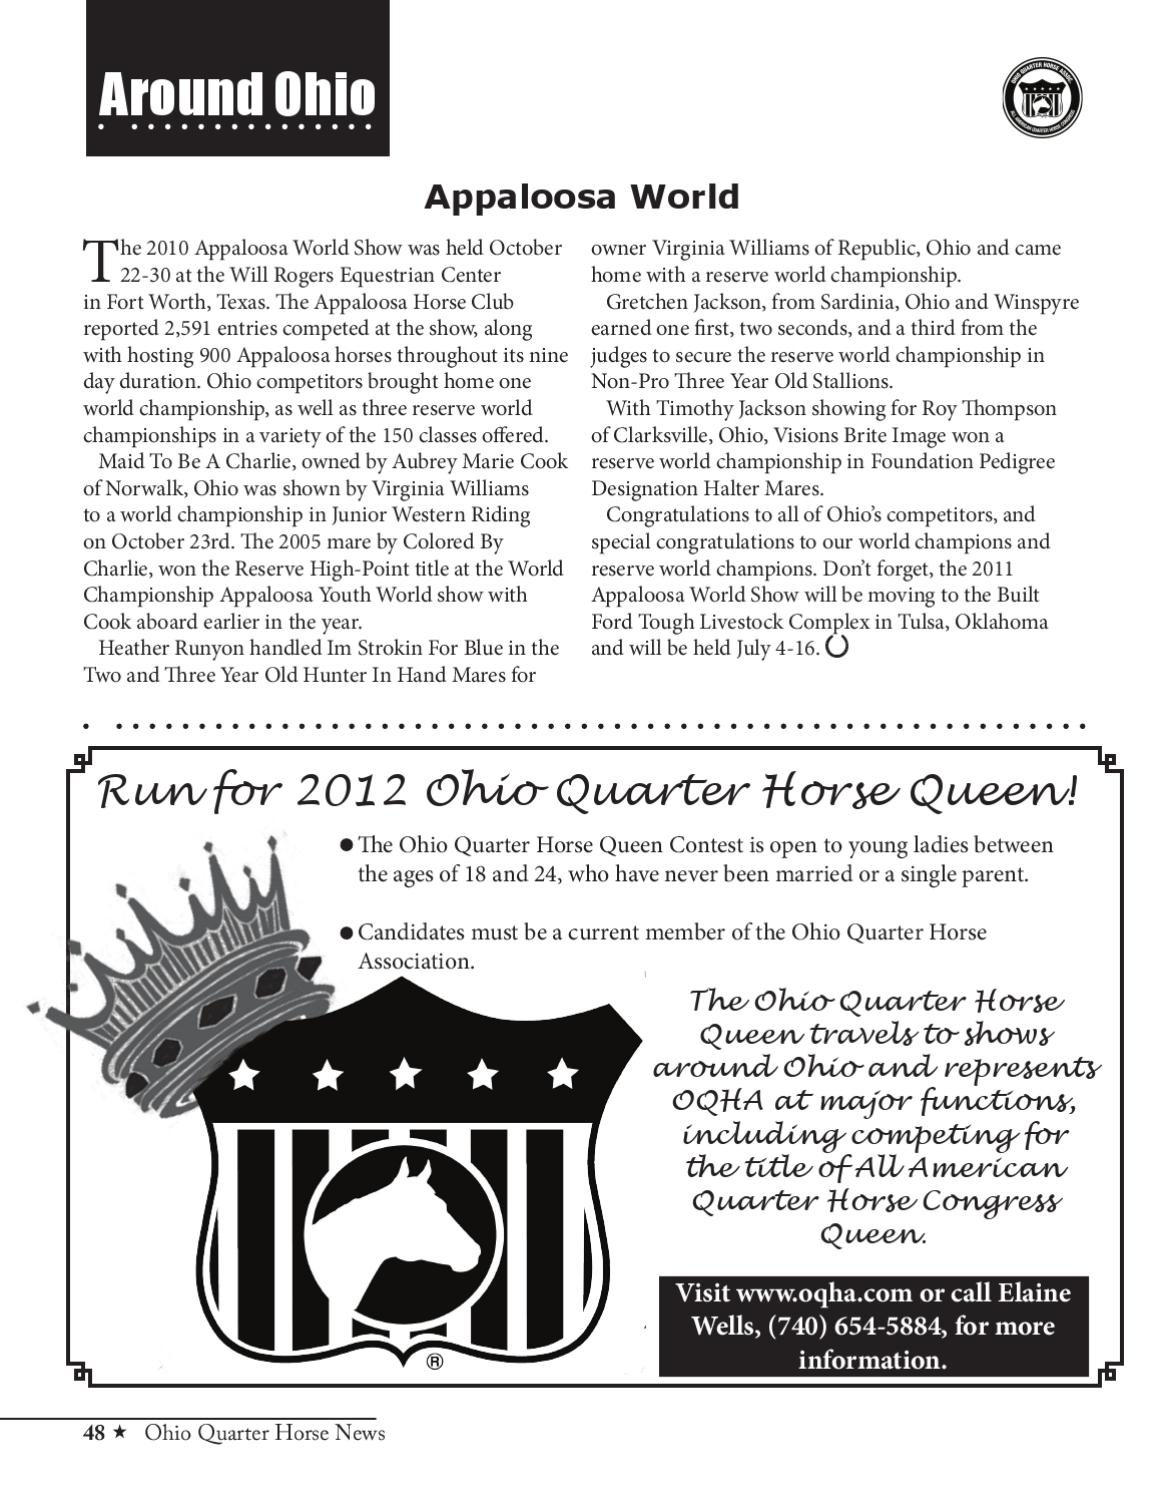 Ohio Quarter Horse News January/February 2011 by Ohio